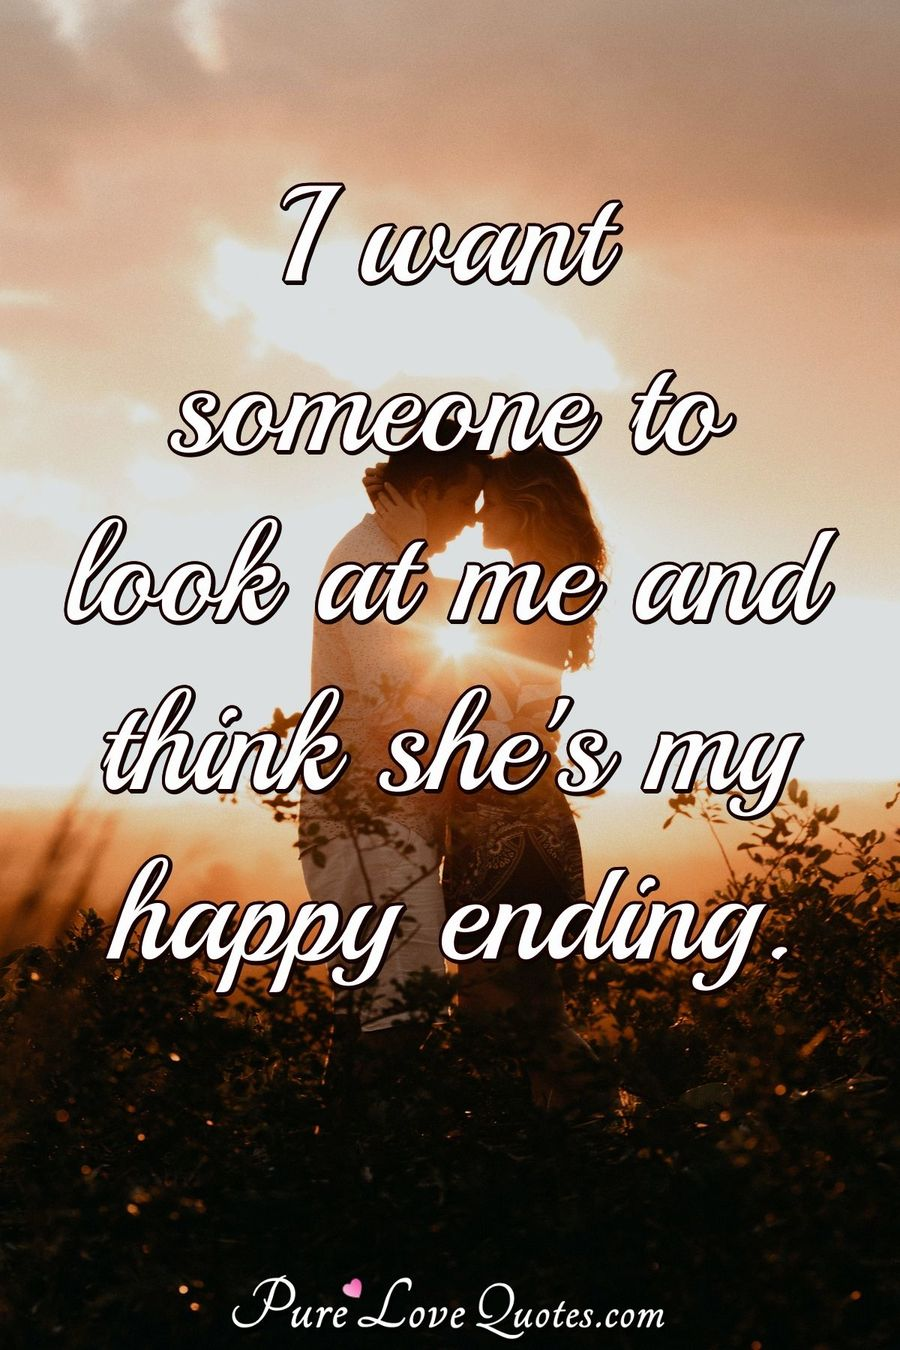 I want someone to look at me and think she's my happy ending.